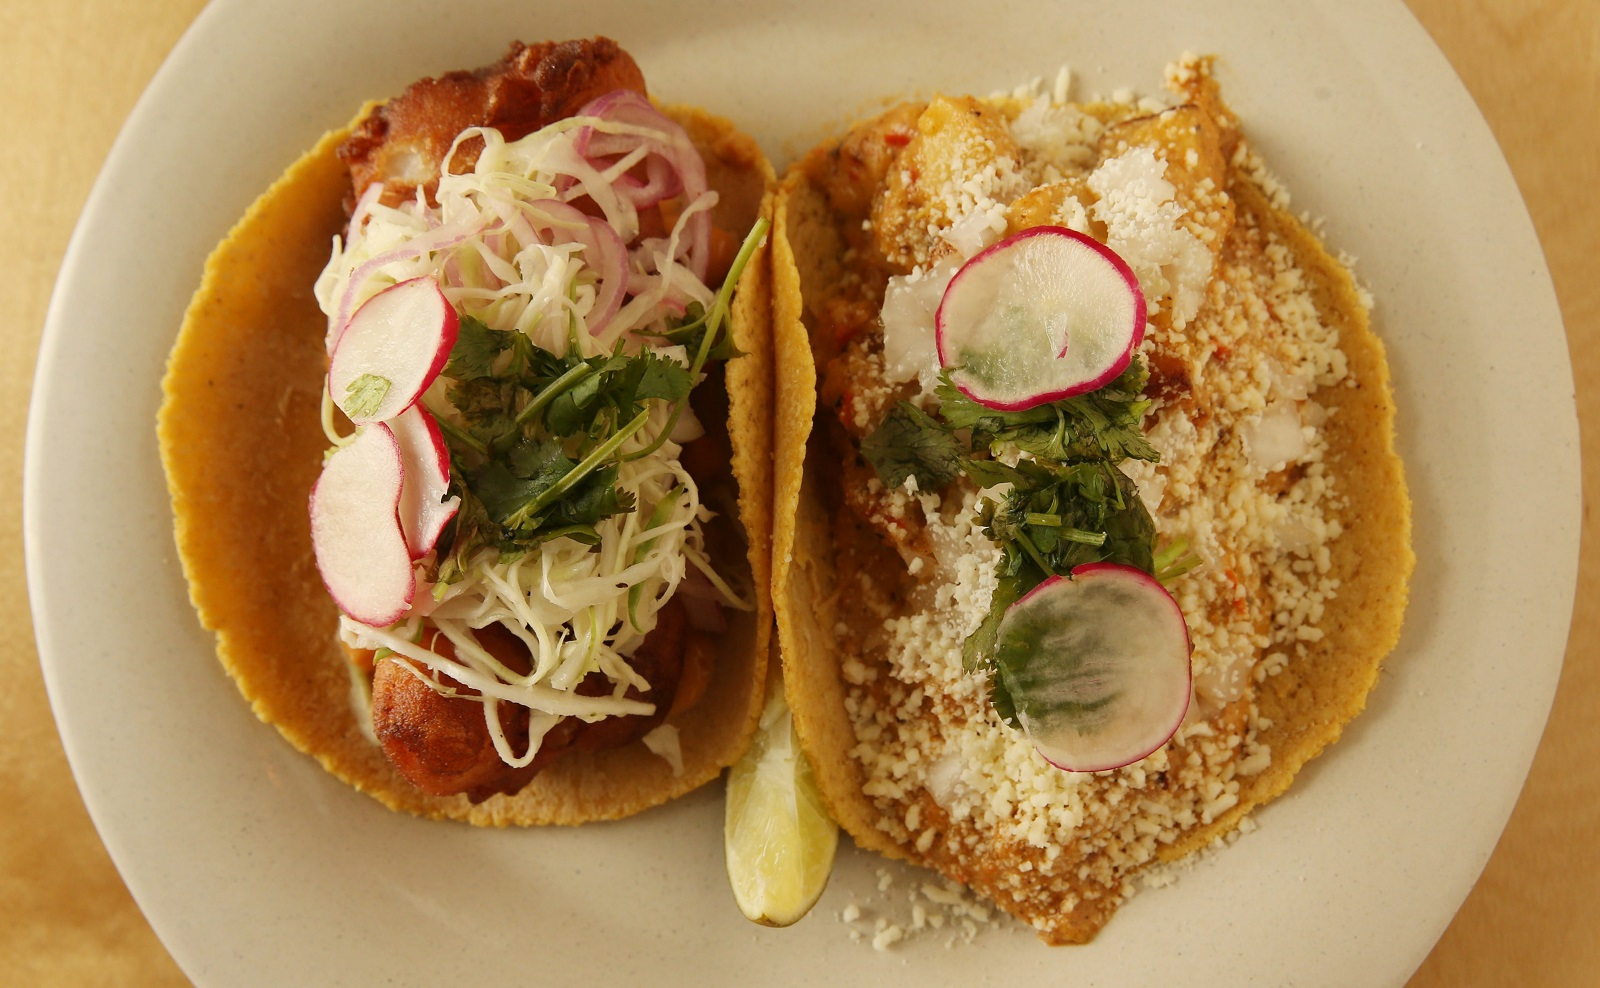 Deep South Taco's pescado taco, left, with crispy cod, chipotle mayo, cabbage, red onion; right, papas con rajas taco with potato, roasted poblano strips, chipotle, cotija cheese (Sharon Cantillon/Buffalo News)